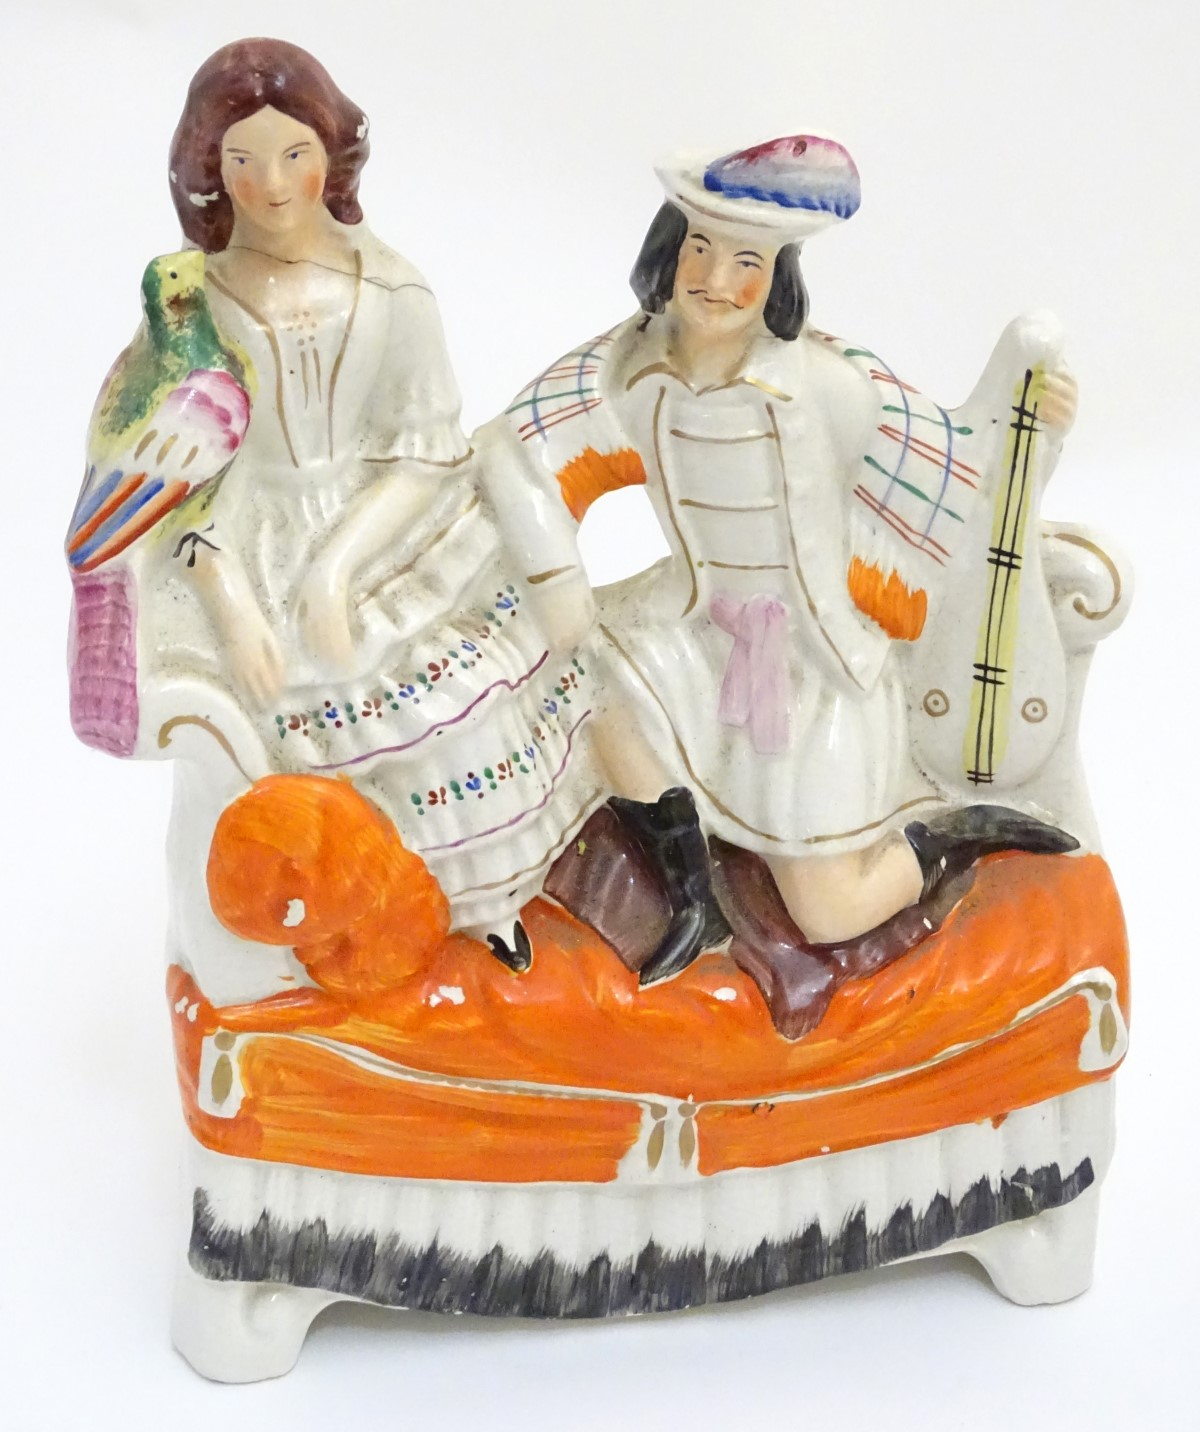 Lot 43 - A 19thC Staffordshire flatback figural group of a man with a musical instrument and a woman with a